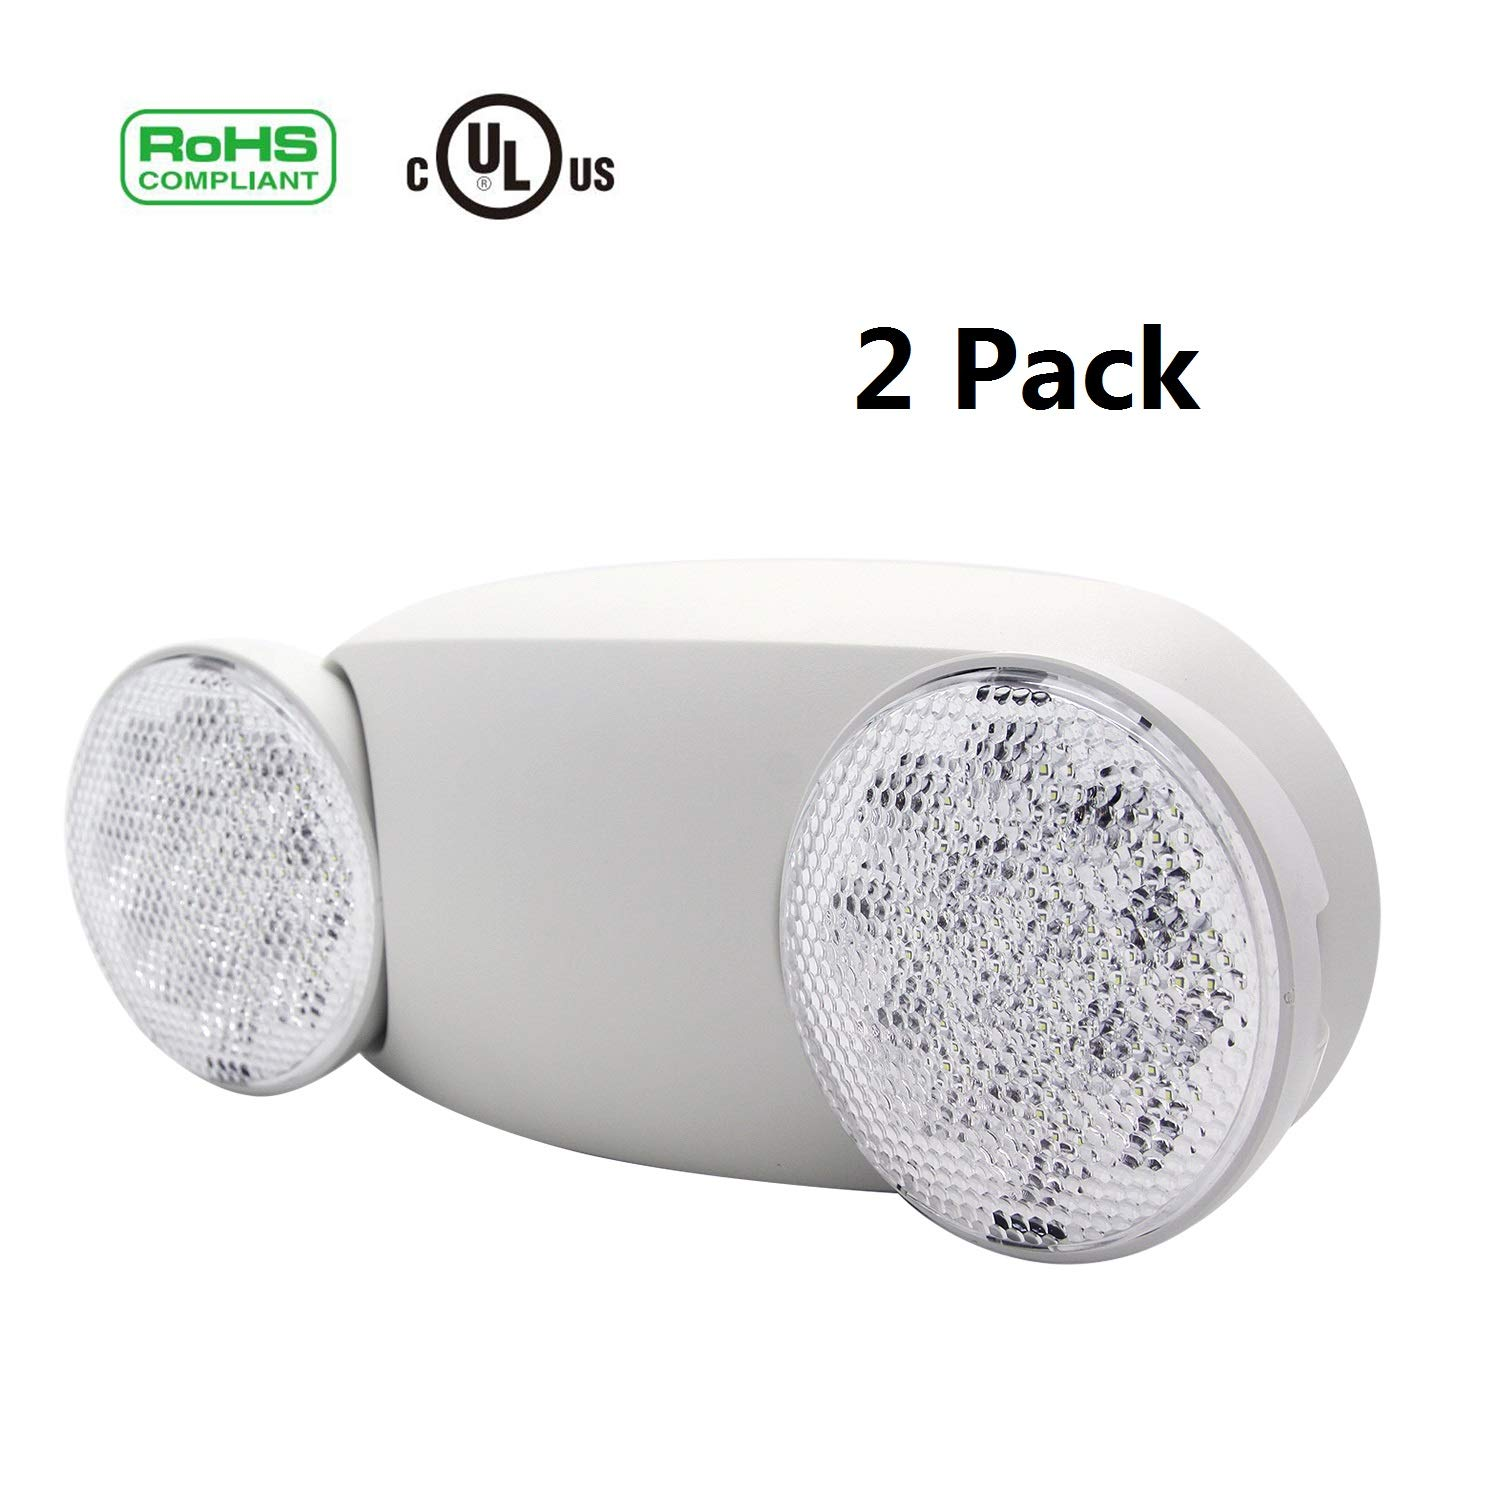 LED Emergency Light Fixture, Two Adustable Round Head, 2 Pack, UL Certified